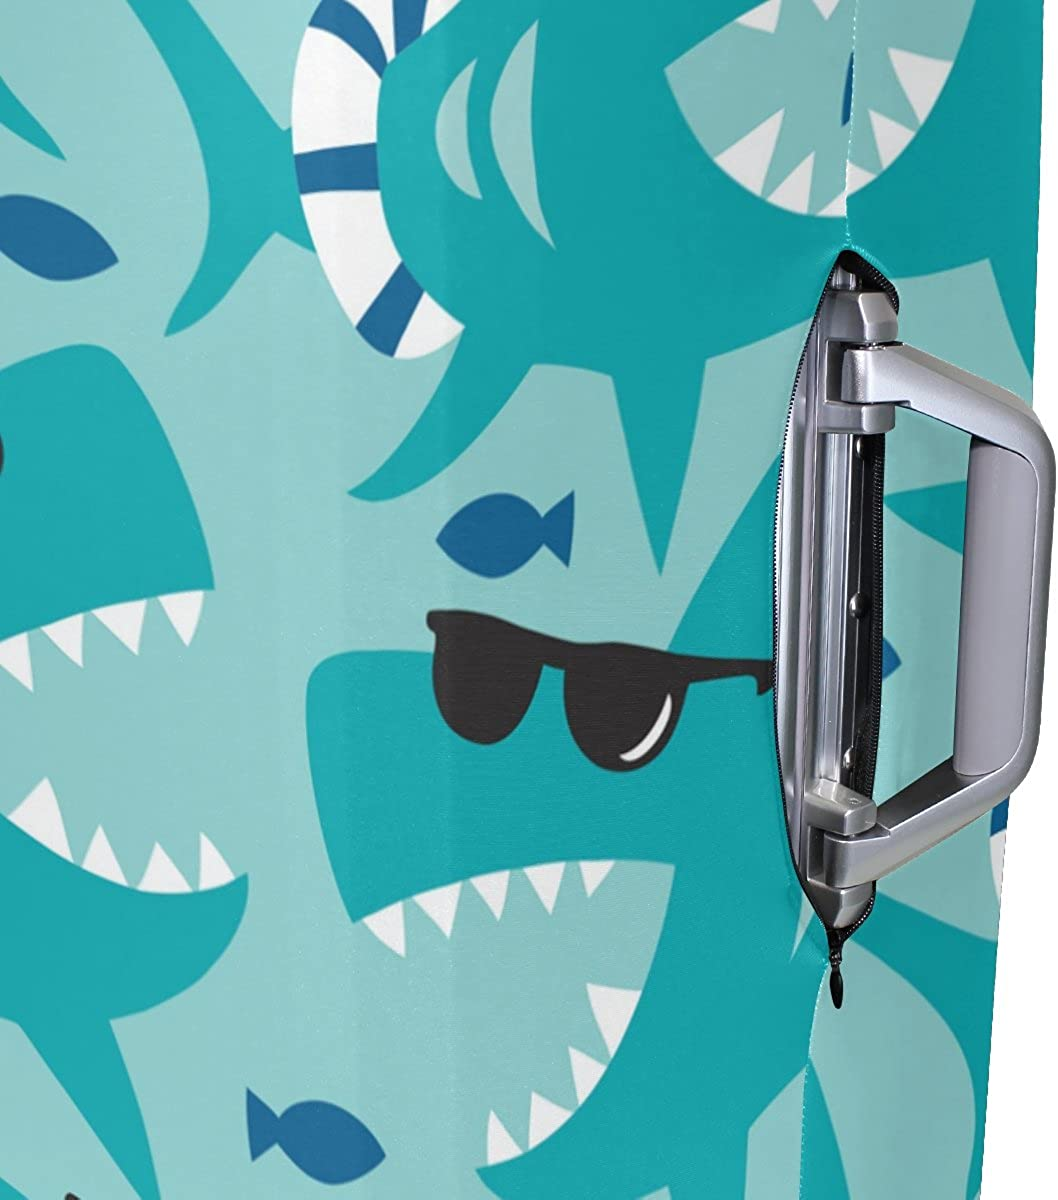 Elastic Travel Luggage Cover Sharks With Sunglasses Suitcase Protector for 18-20 Inch Luggage